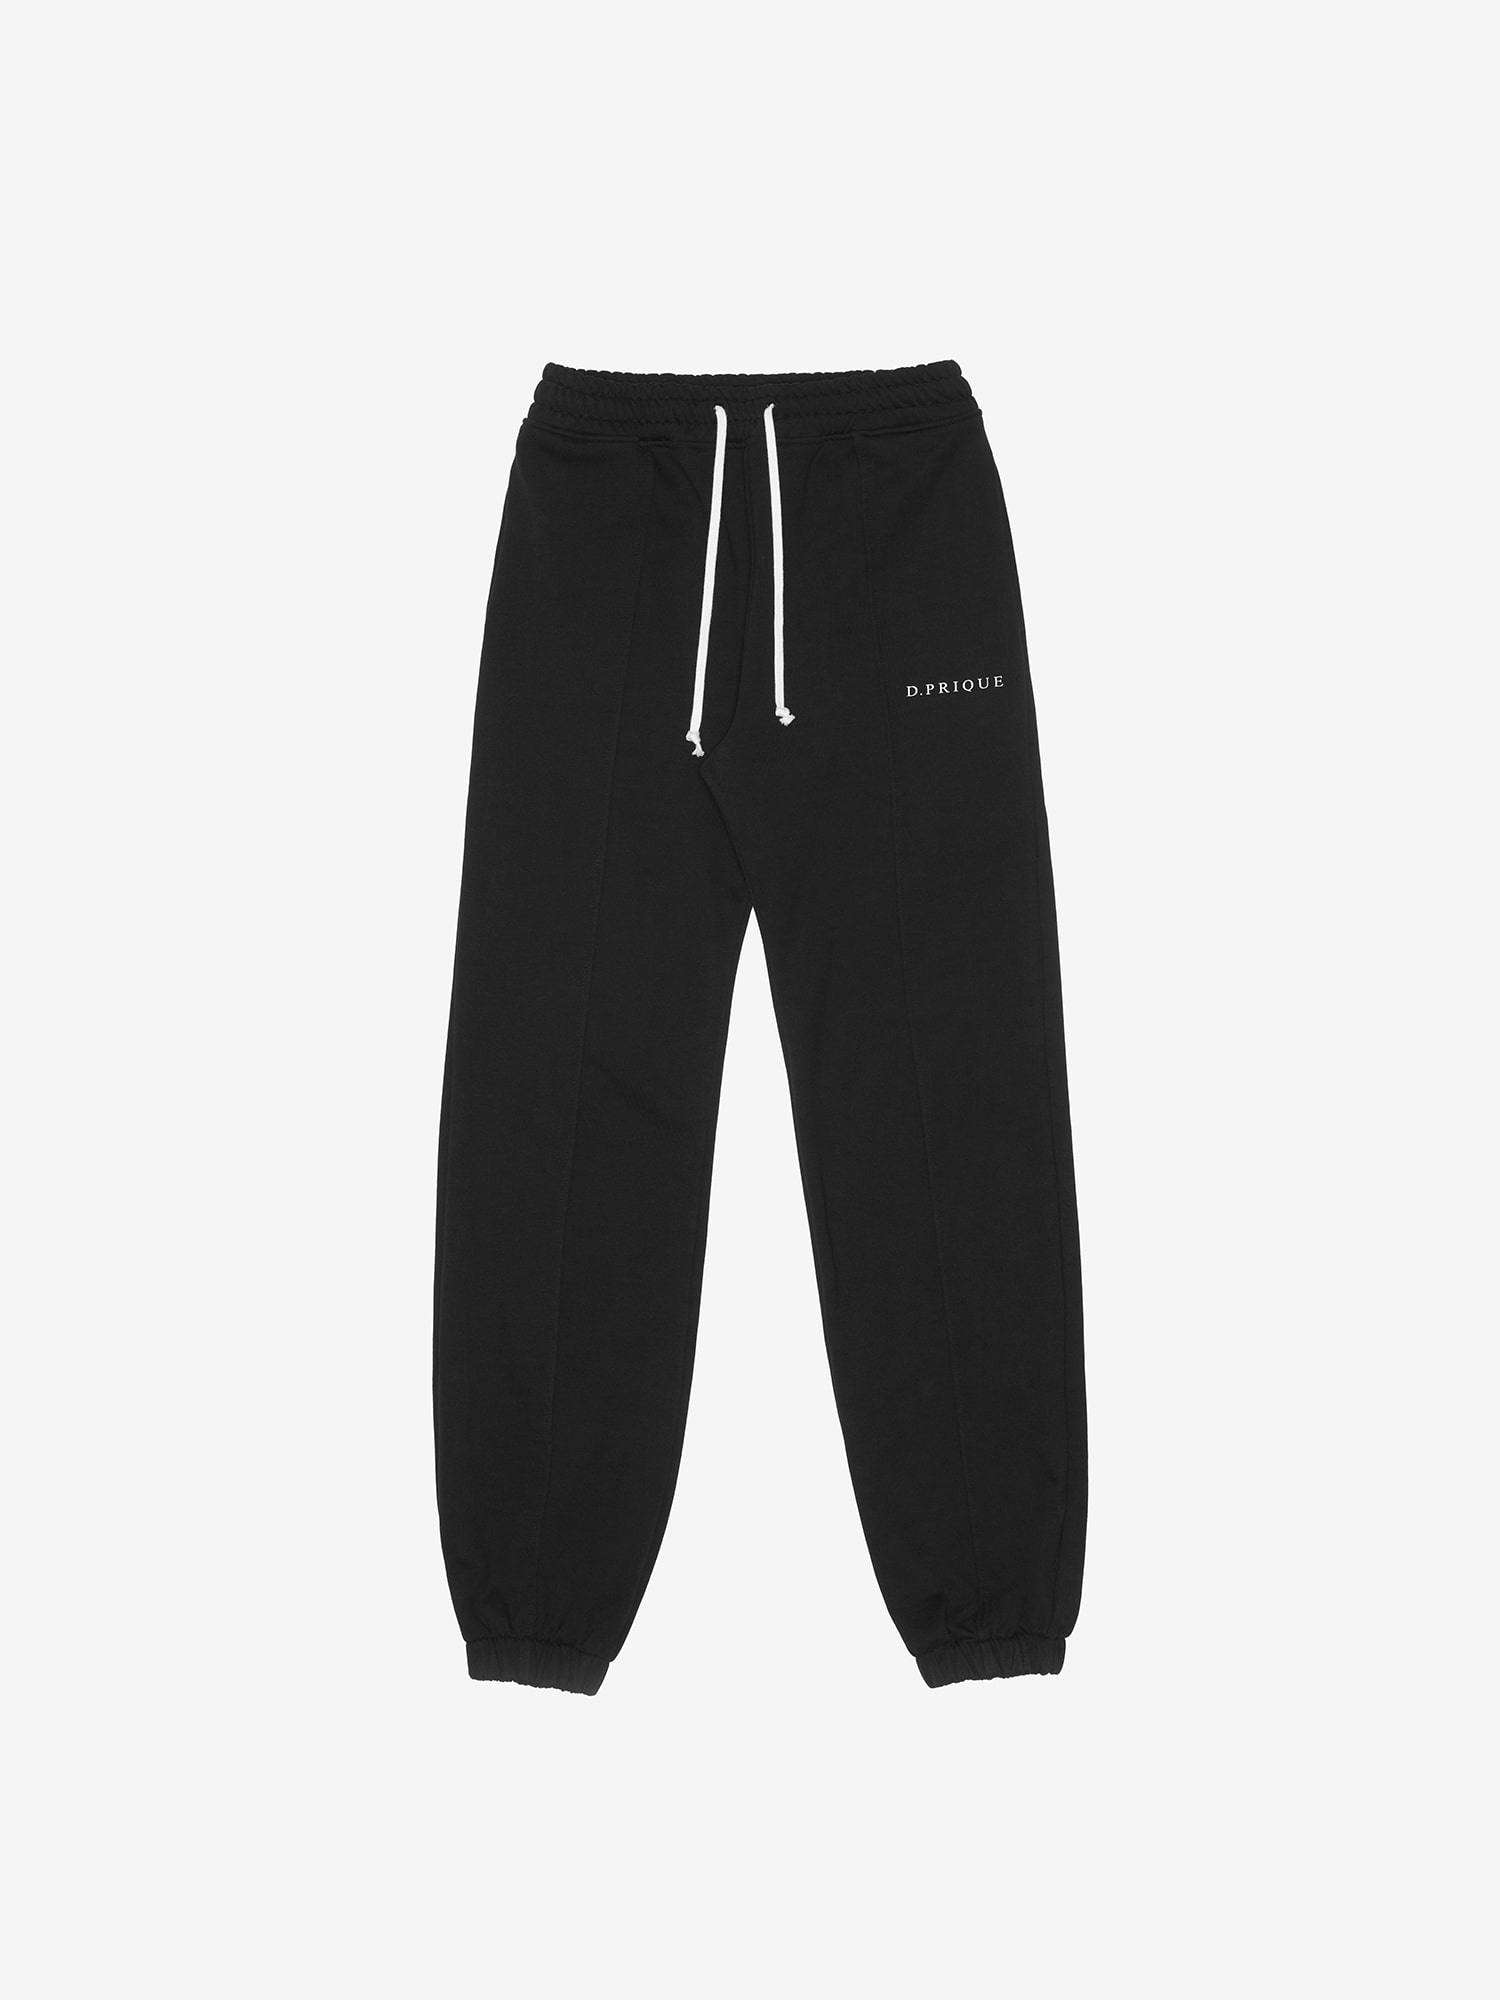 LOGO LOUNGE PANTS - Black